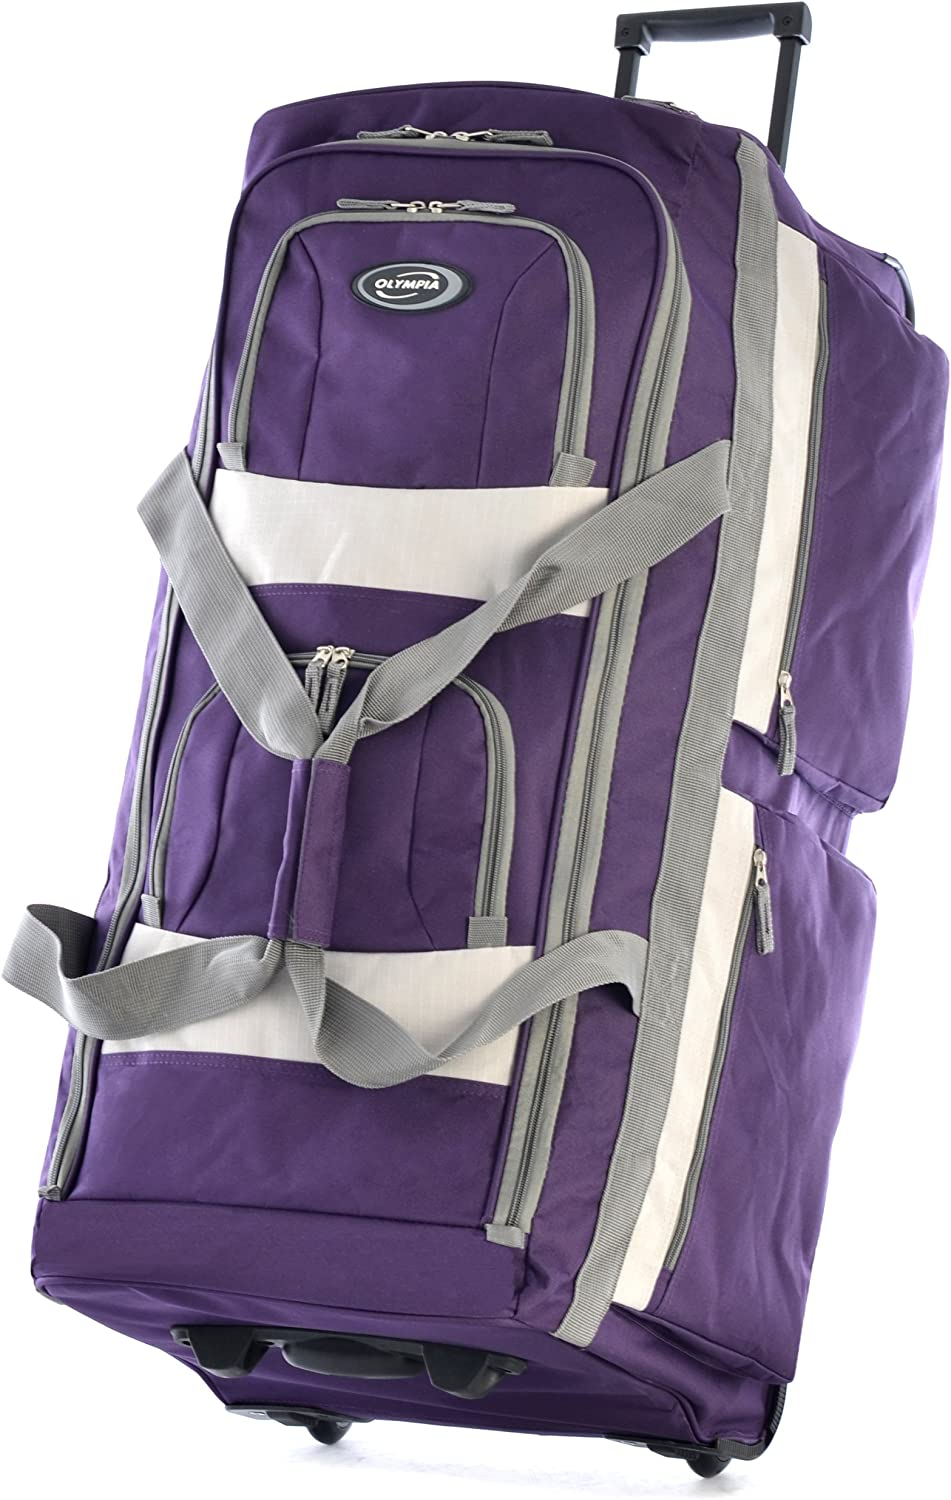 | Olympia 8 Pocket Rolling Duffel Bag, Dark Lavender, 33 inch | Travel Duffels